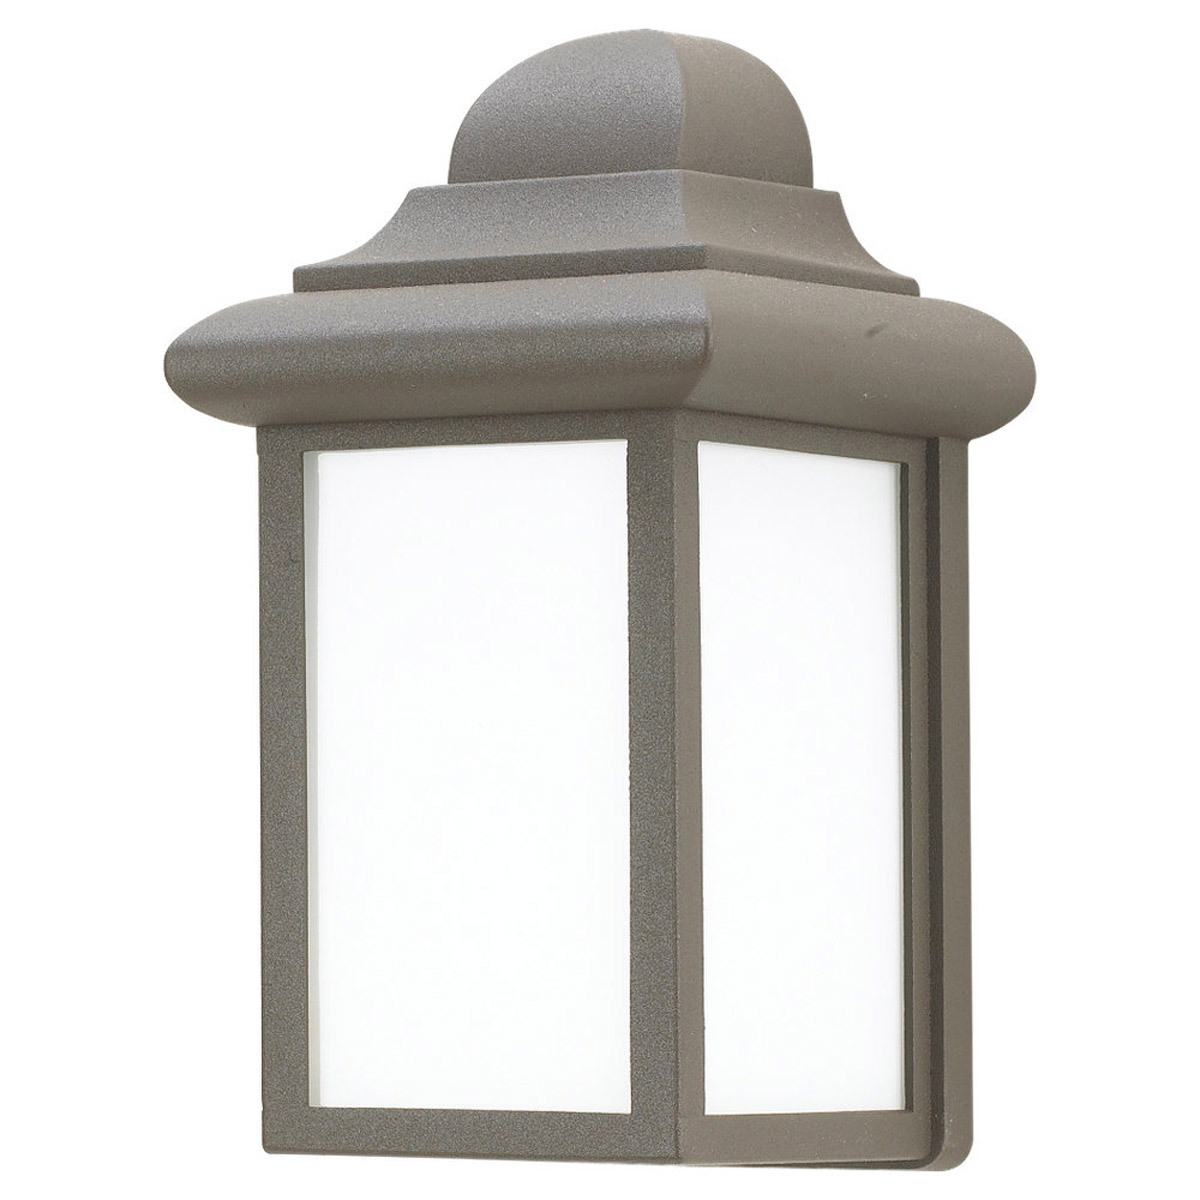 Sea Gull Lighting Mullberry Hill 1 Light Outdoor Wall Lantern in Bronze 8988PBLE-10 photo